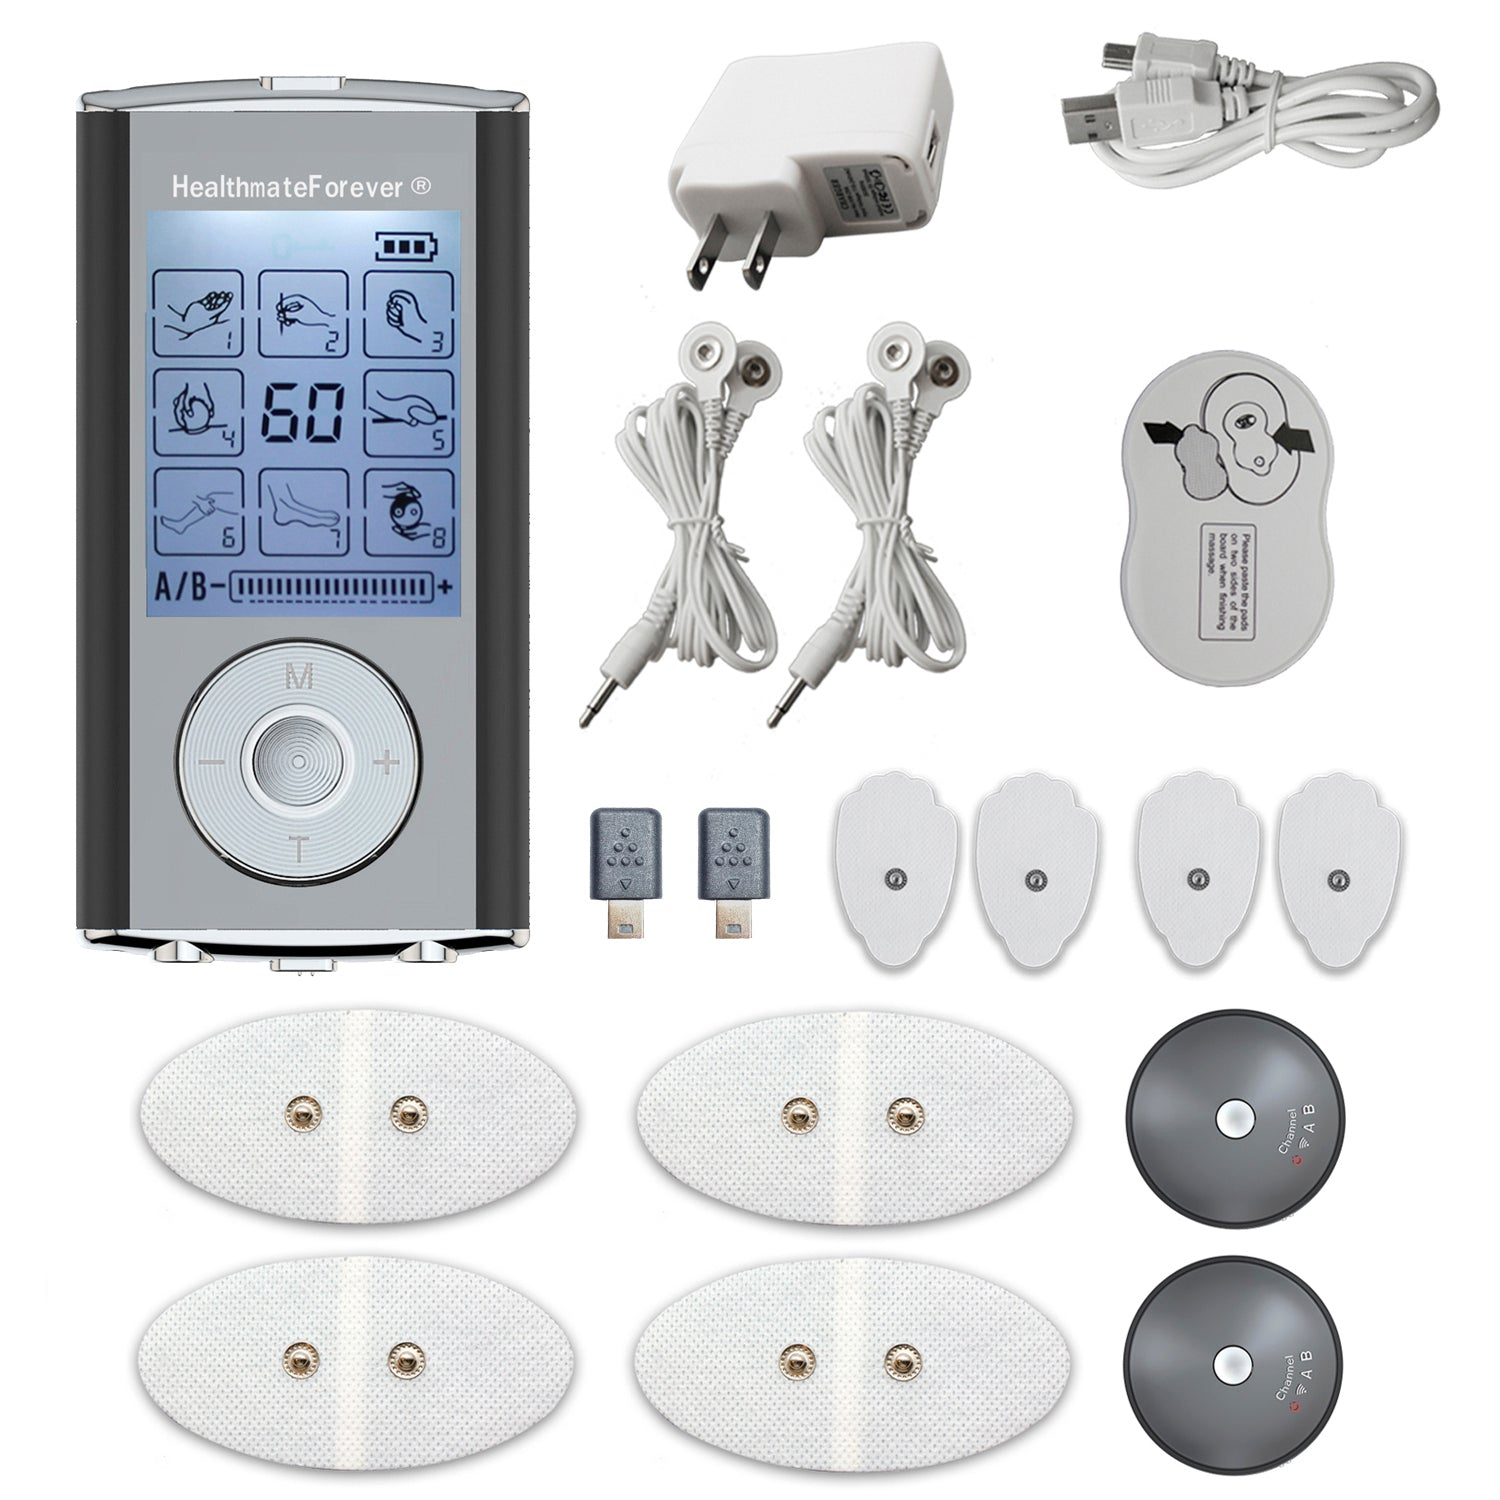 HM8AB TENS Unit & Muscle Stimulator, two independent AB channels like 2in1 machine - HealthmateForever.com